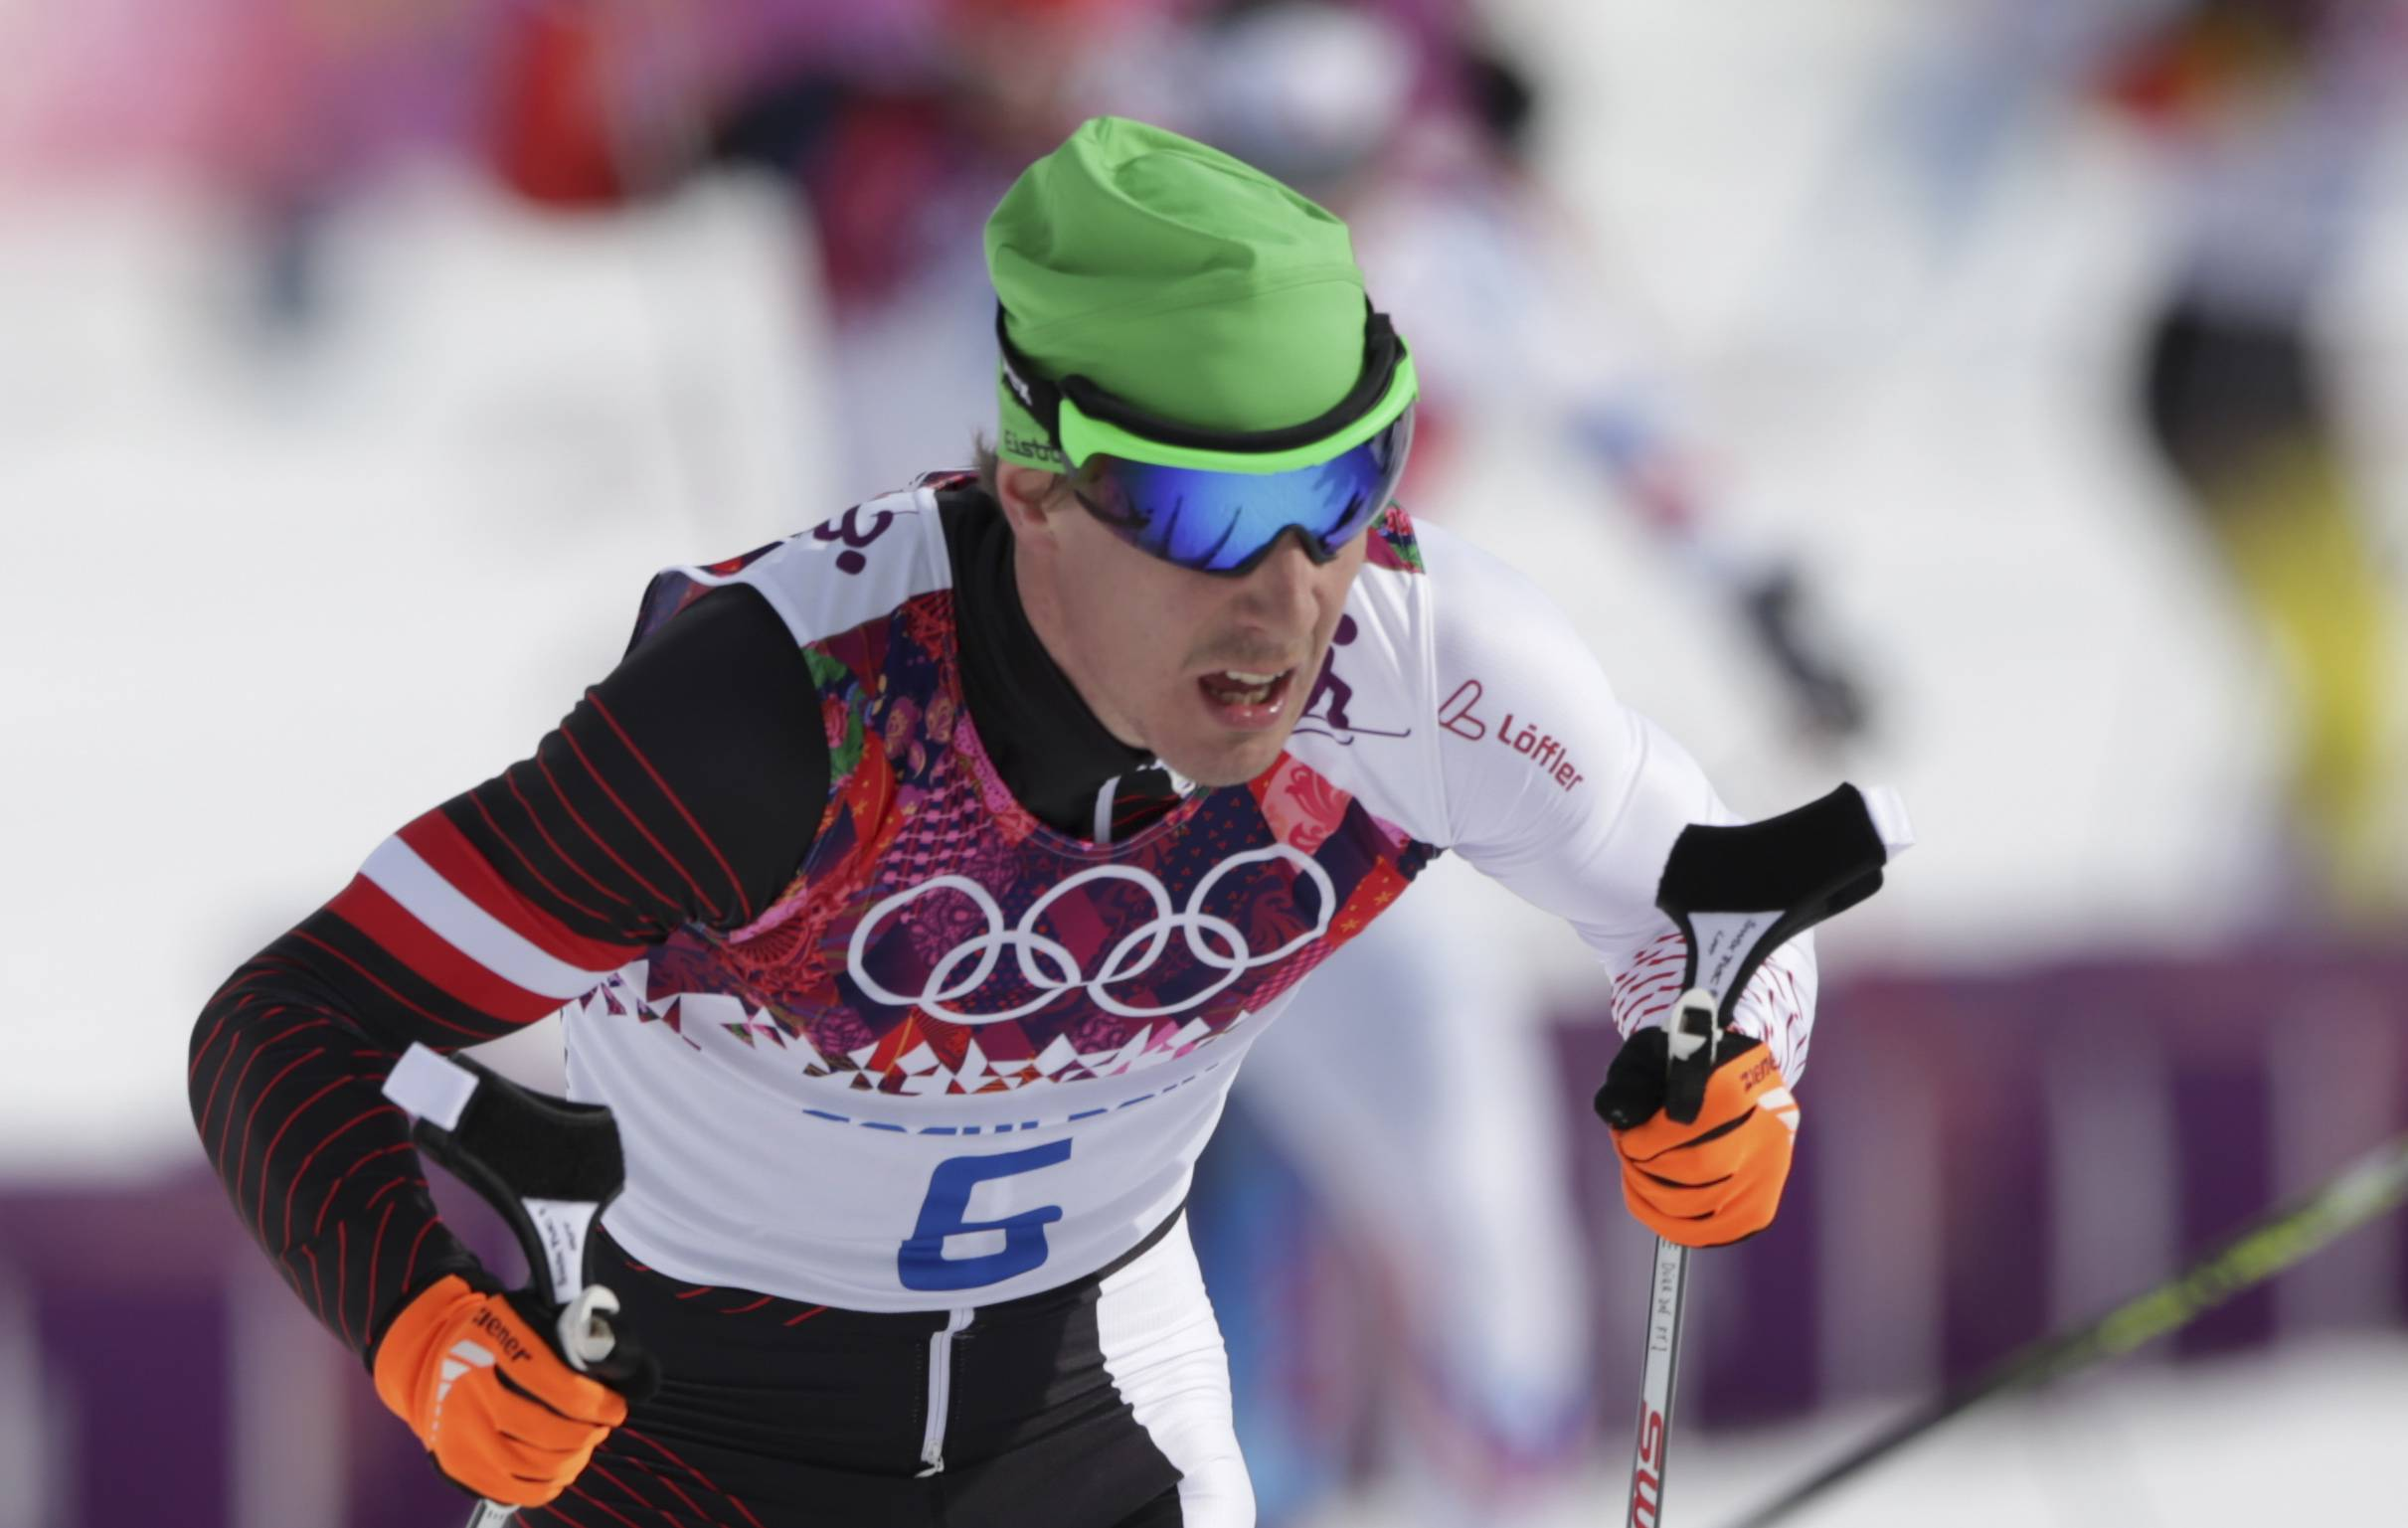 In this Feb. 9, 2014 photo Austria's Johannes Duerr competes during the men's cross-country 30k skiathlon at the 2014 Winter Olympics in Krasnaya Polyana, Russia. Duerr has been kicked out of the Sochi Games after testing positive for EPO, the country's Olympic committee said Sunday, Feb 23, 2014. It is the fifth doping case of the Olympics and the first involving the blood-boosting drug EPO.